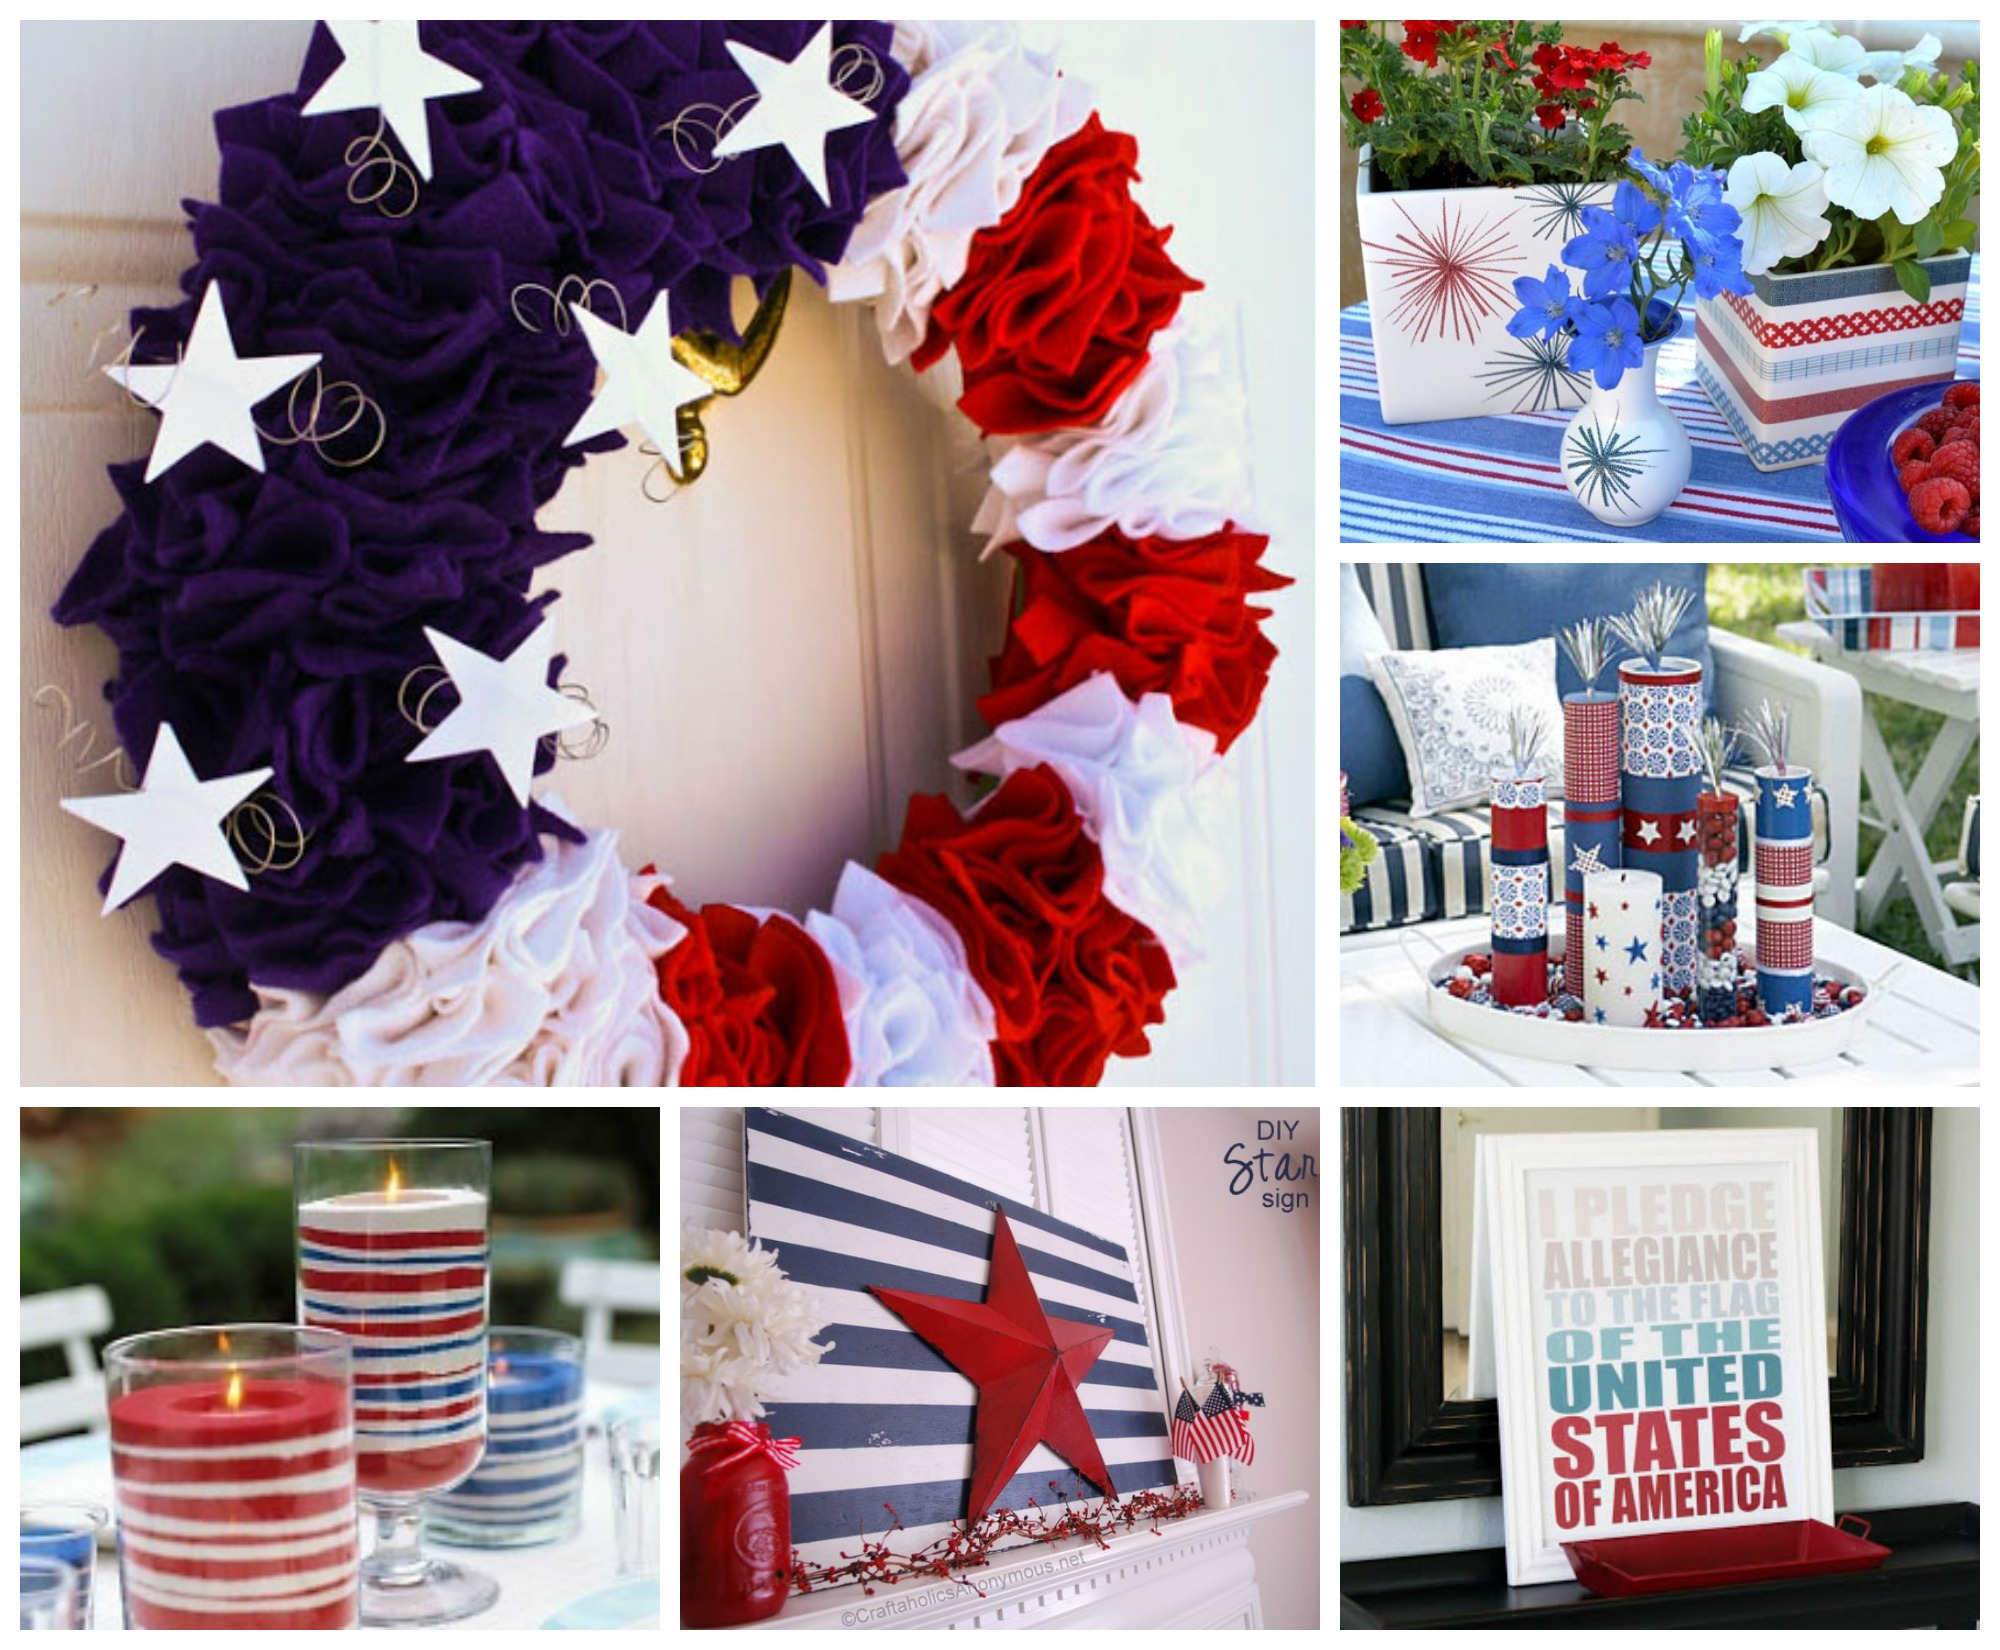 Decorating for July 4th